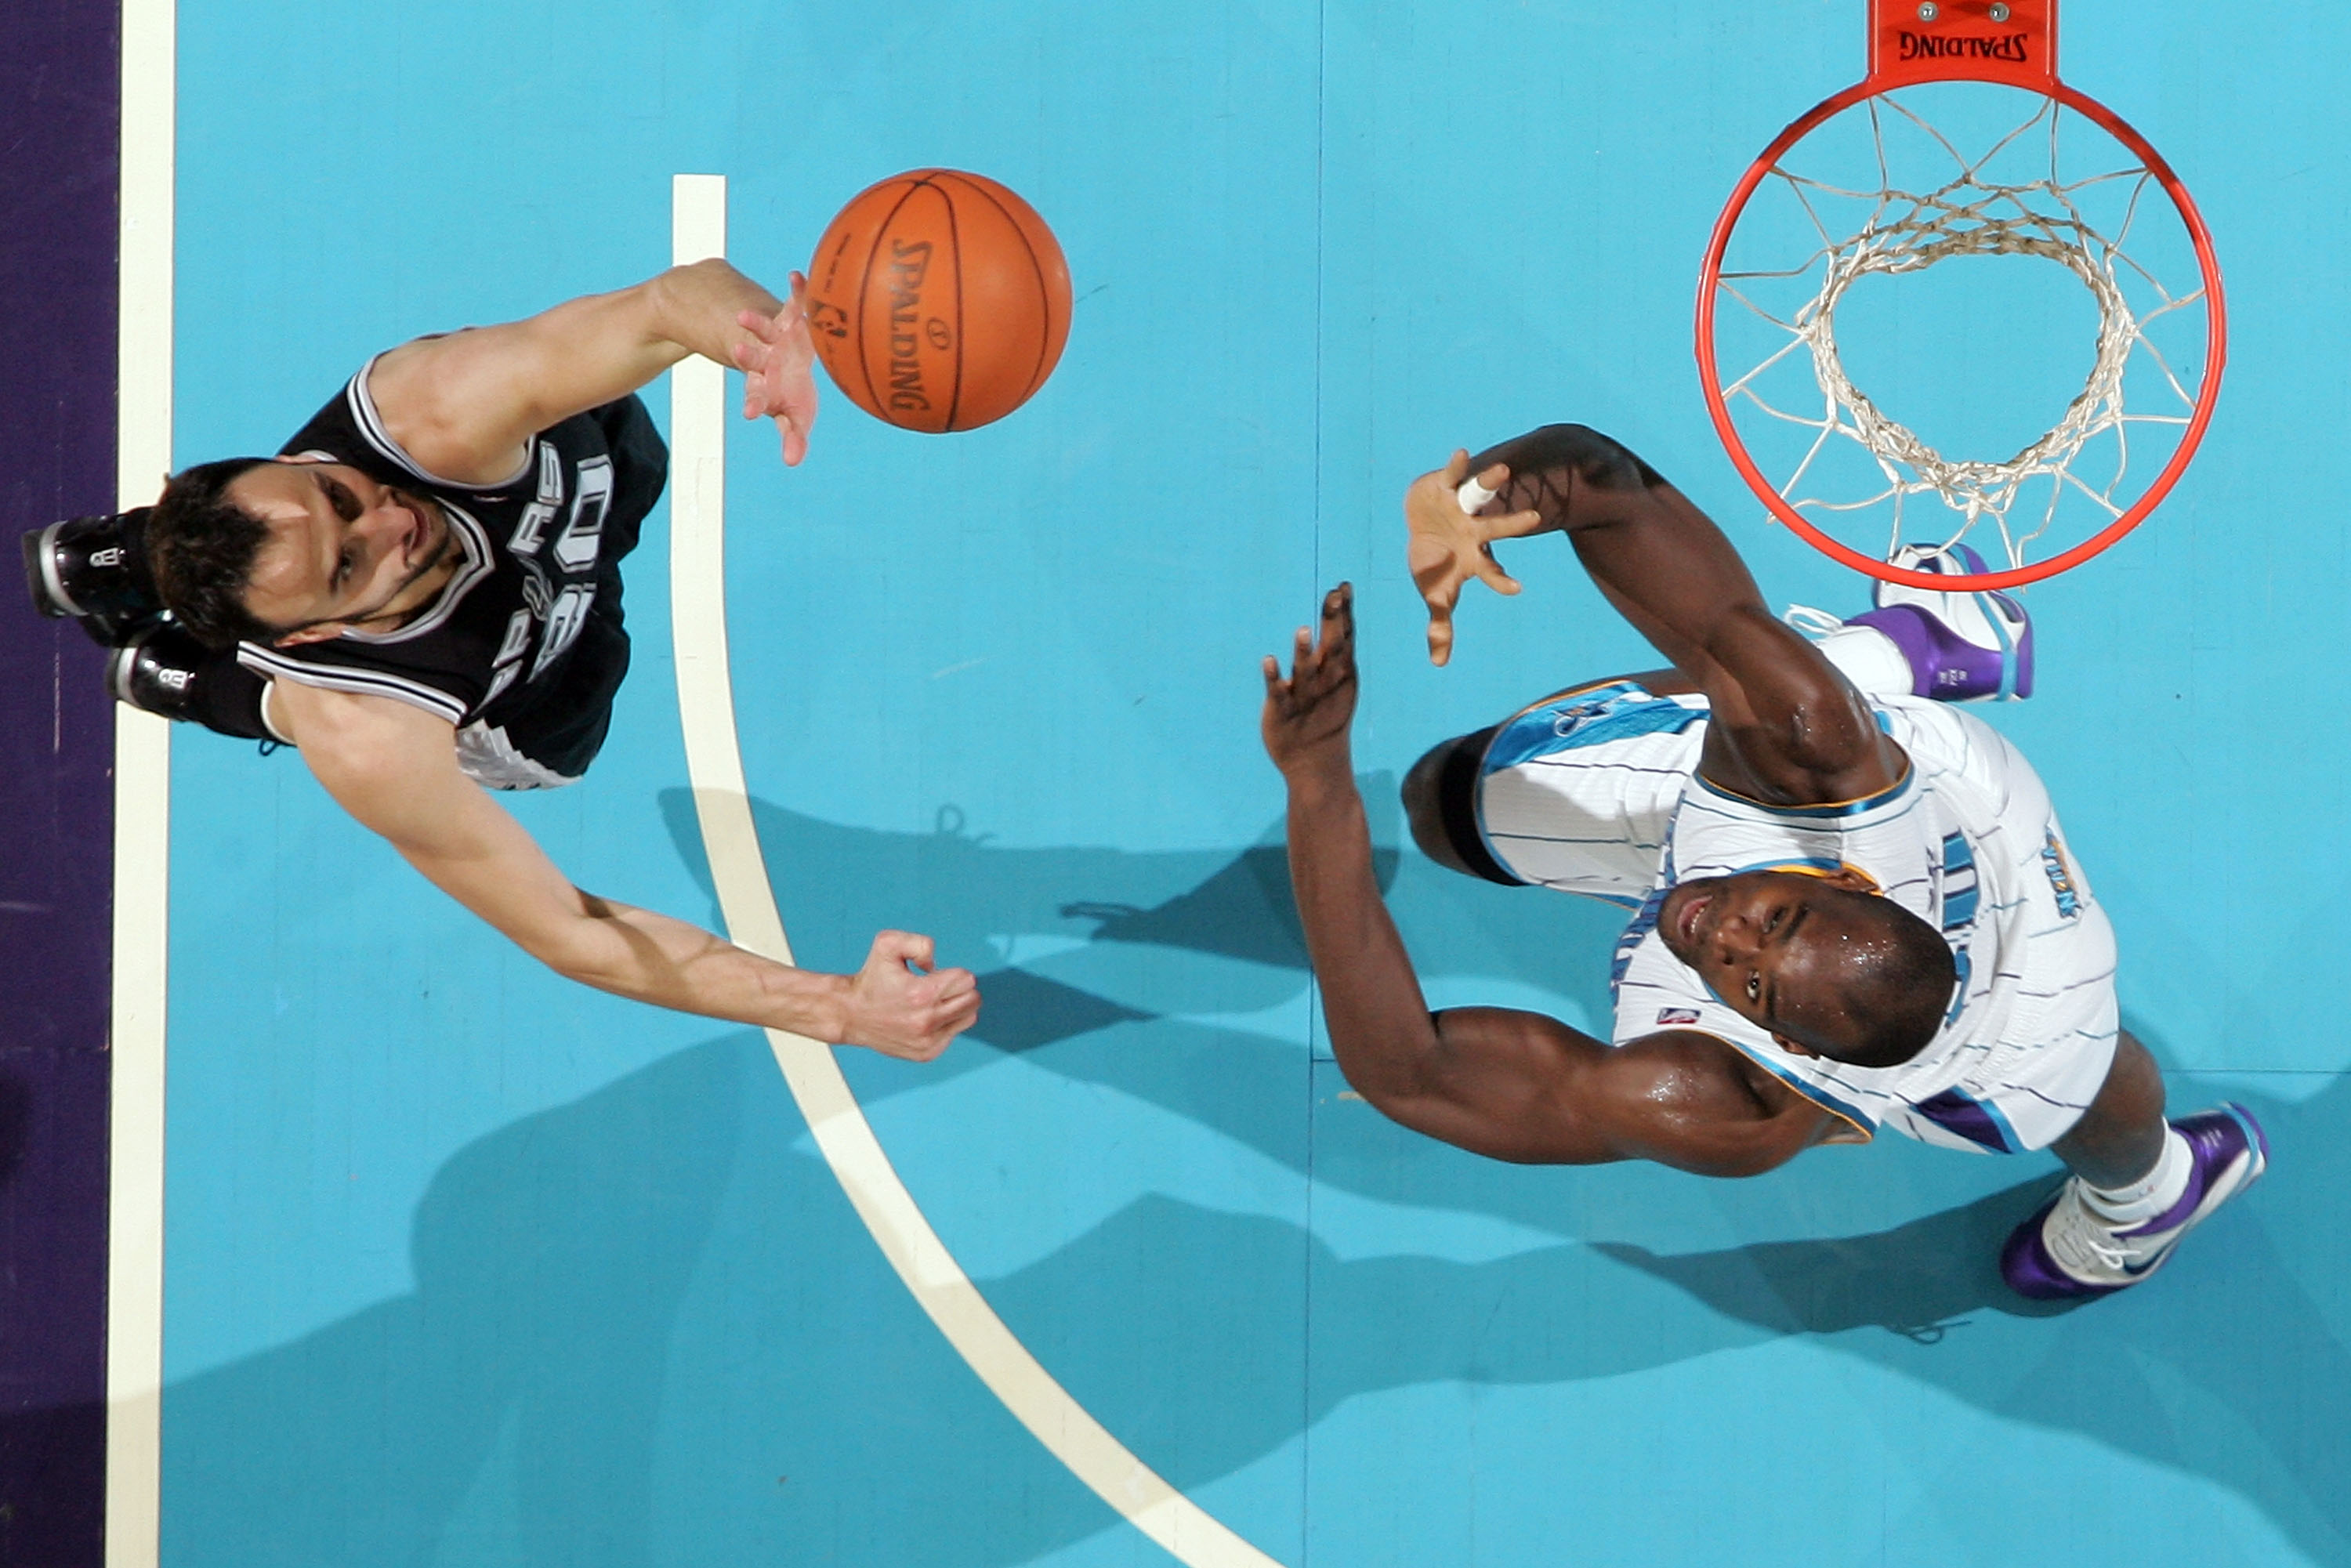 NEW ORLEANS - NOVEMBER 28:  Manu Ginobili #20 of the San Antonio Spurs shoots the ball over Emeka Okafor #50 of the New Orleans Hornets at the New Orleans Arena on November 28, 2010 in New Orleans, Louisiana.  The Spurs defeated the Hornets 109-95.  NOTE